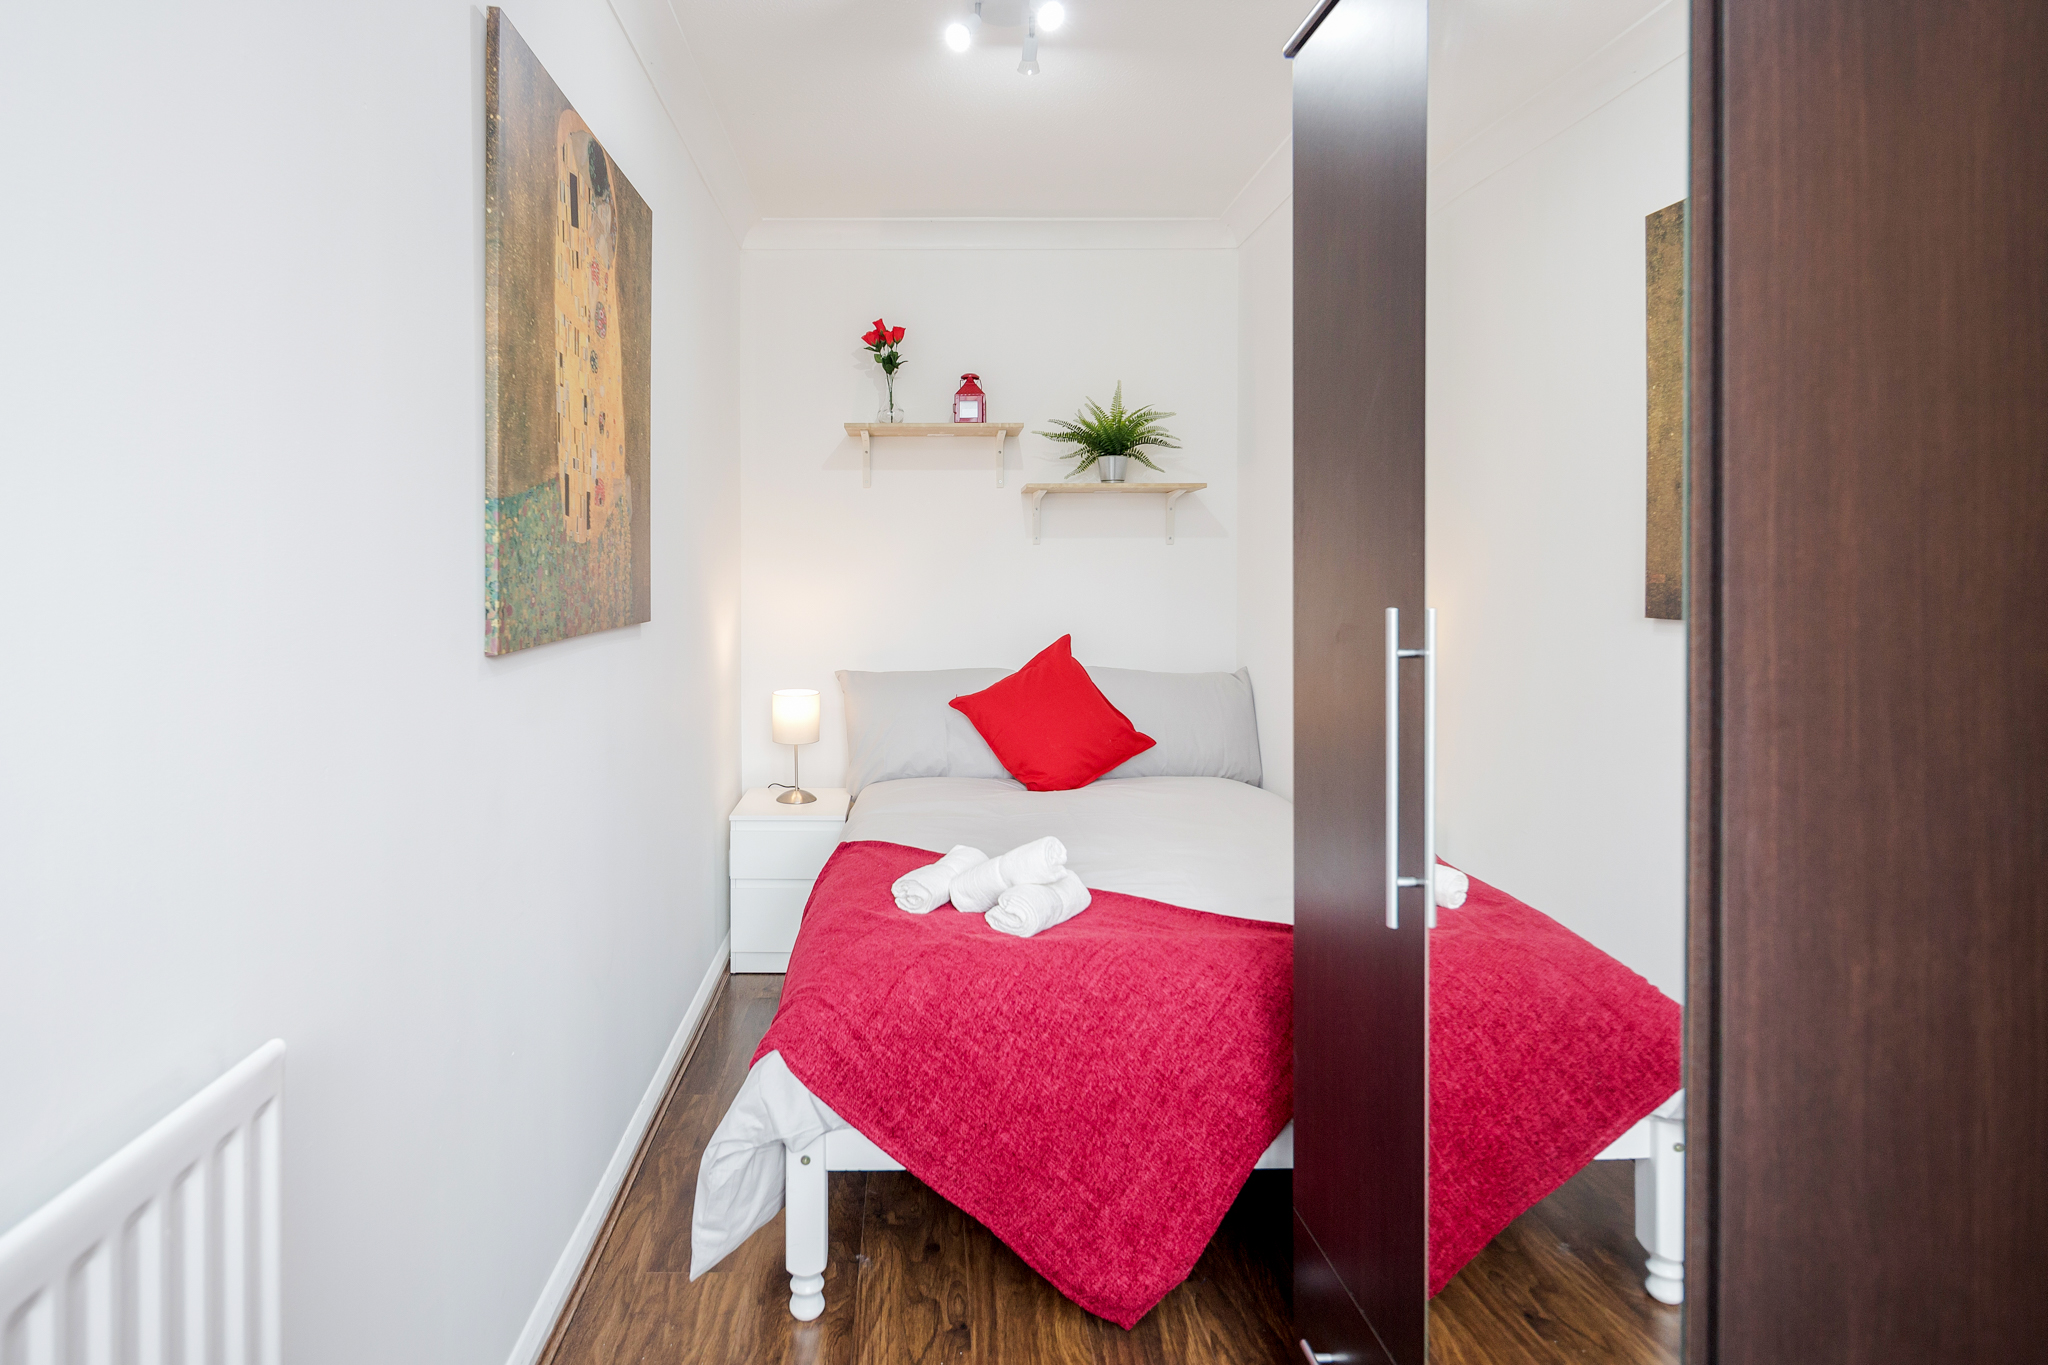 Double room 10 minutes walking from Tower Bridge - (Shared Bathroom) photo 16117010